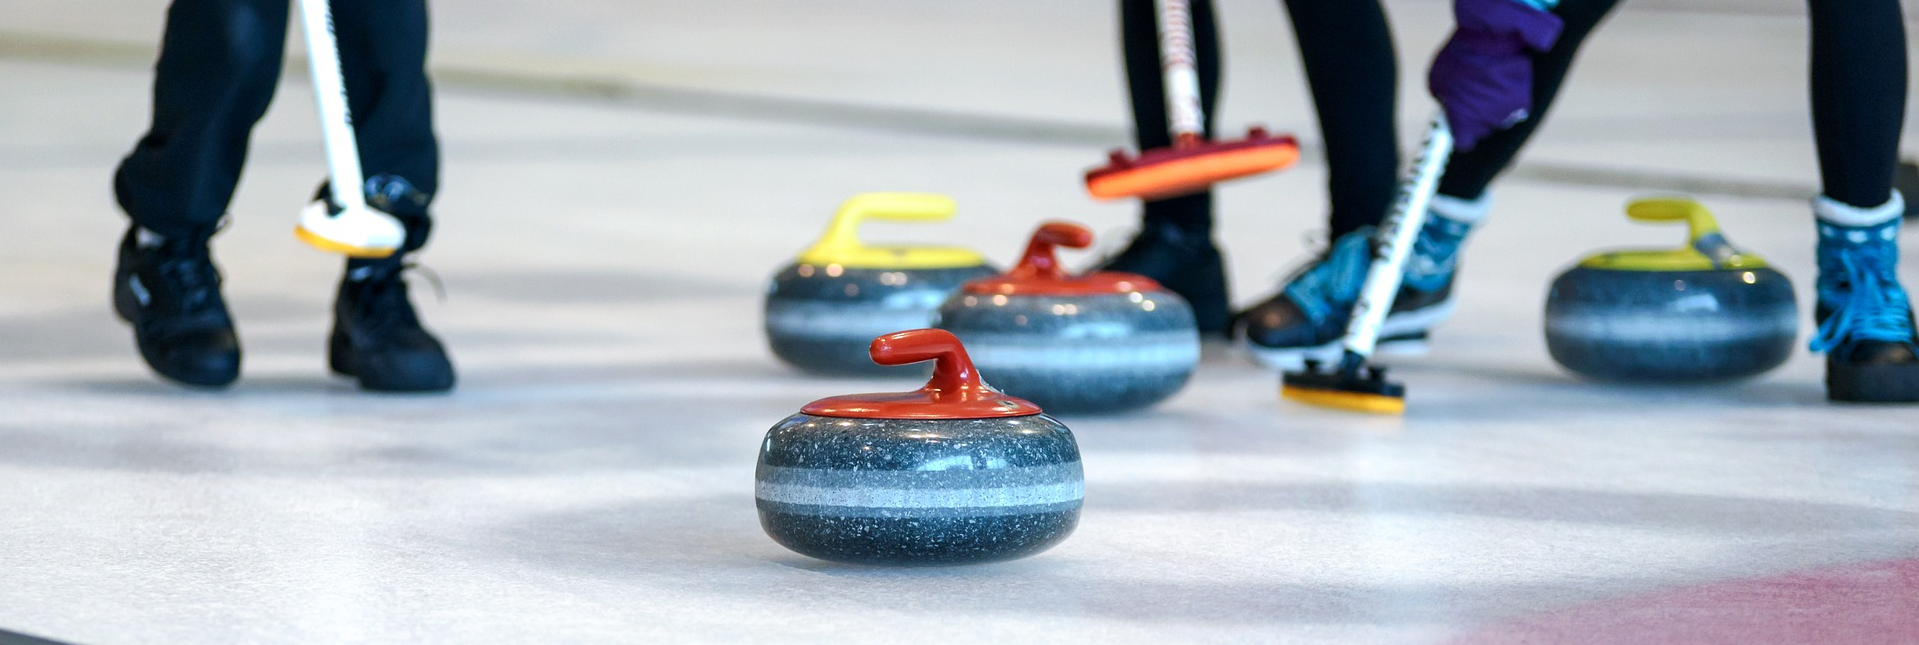 curling-team-building